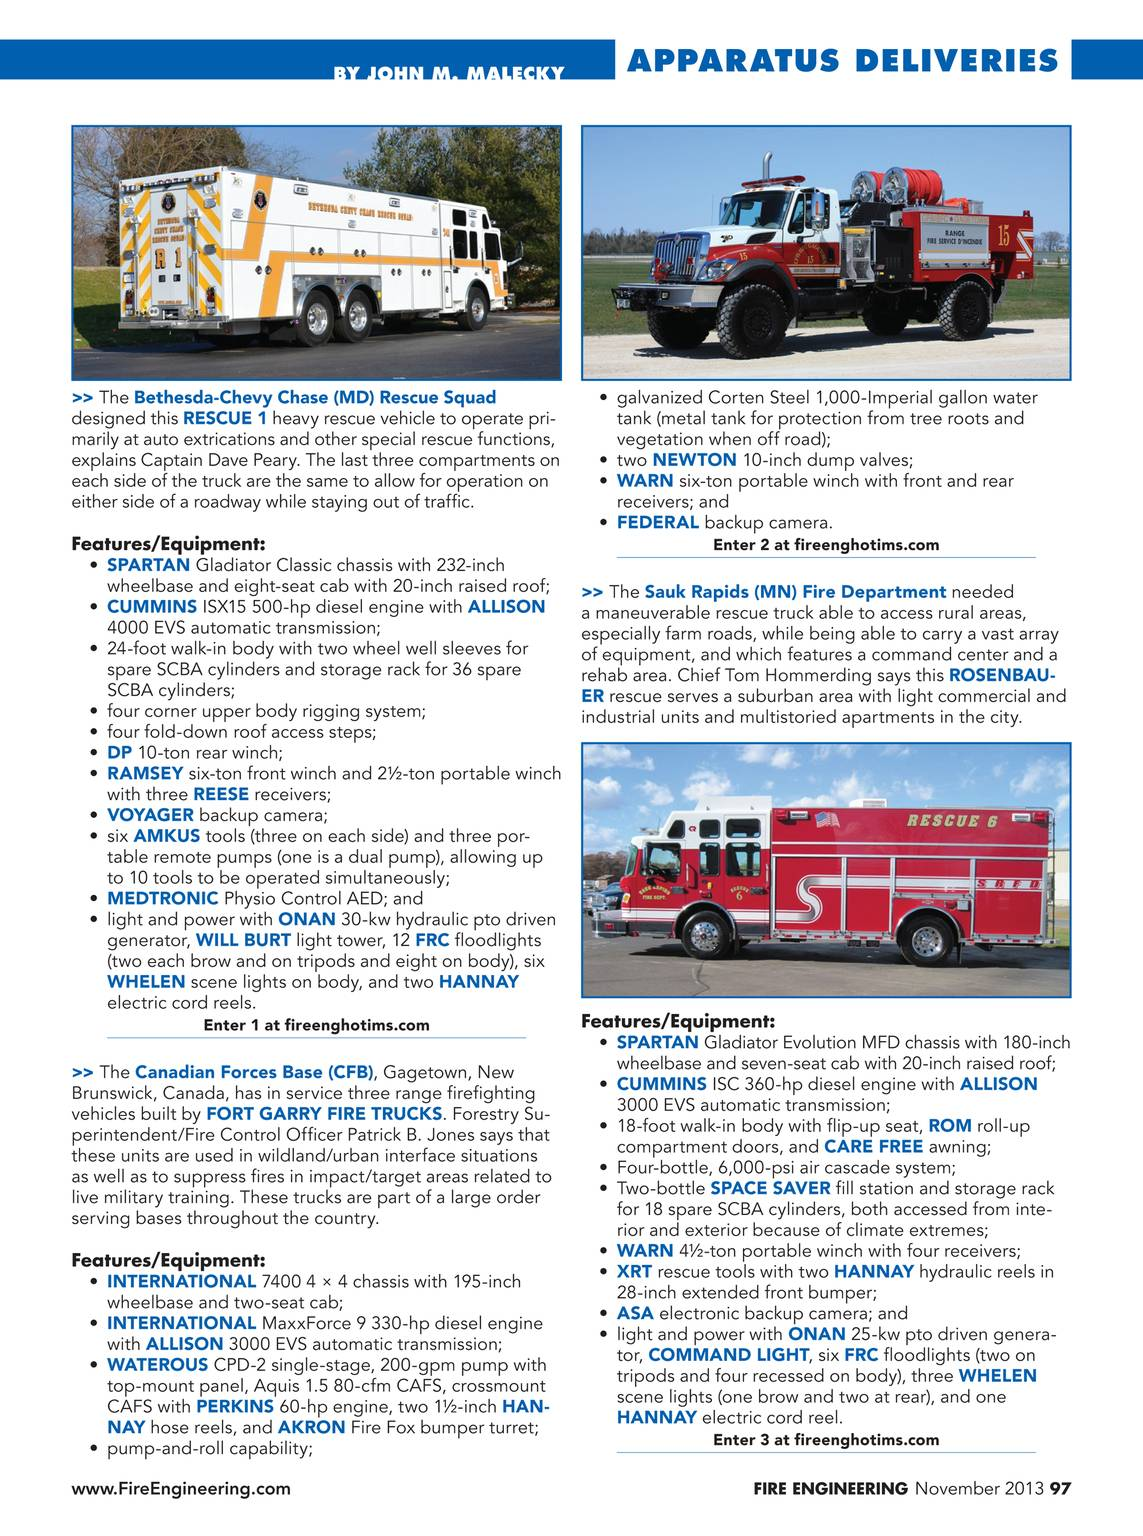 Fire Engineering - November 2013 - page 98